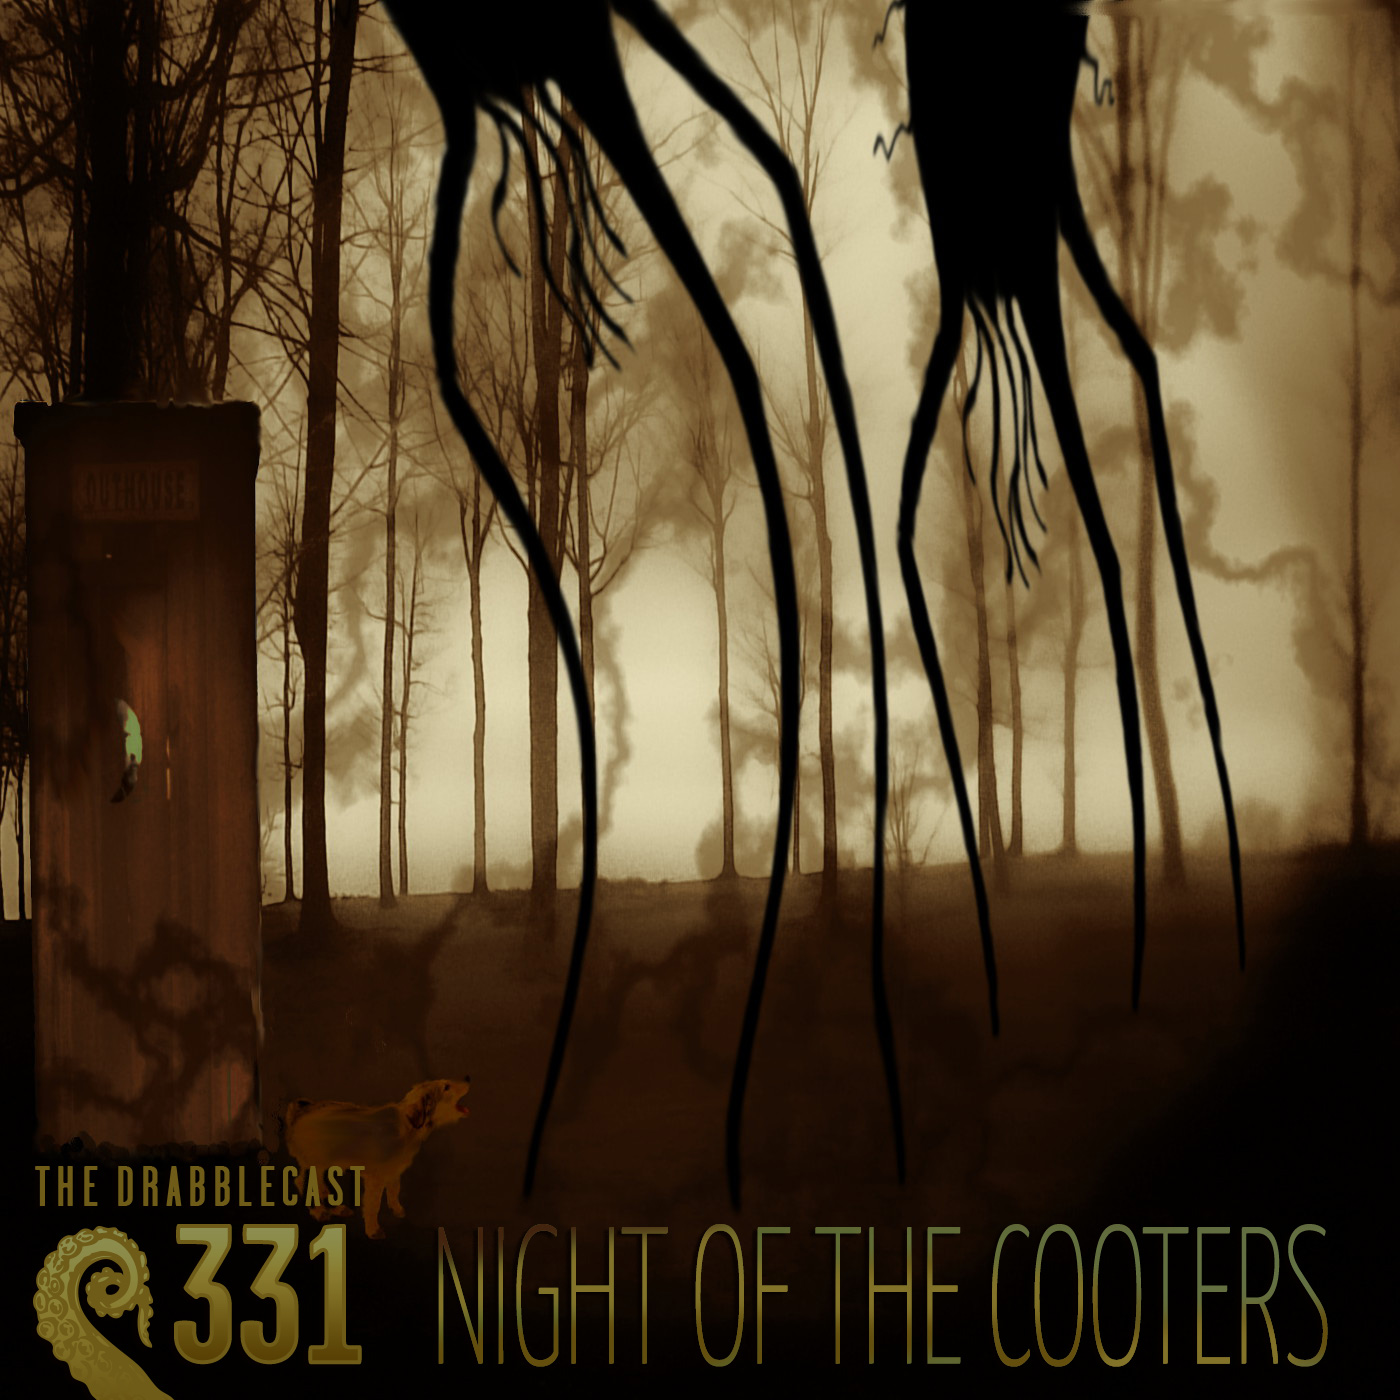 Cover for Drabblecast 331, Night of the Cooters, by Raoul Izzard